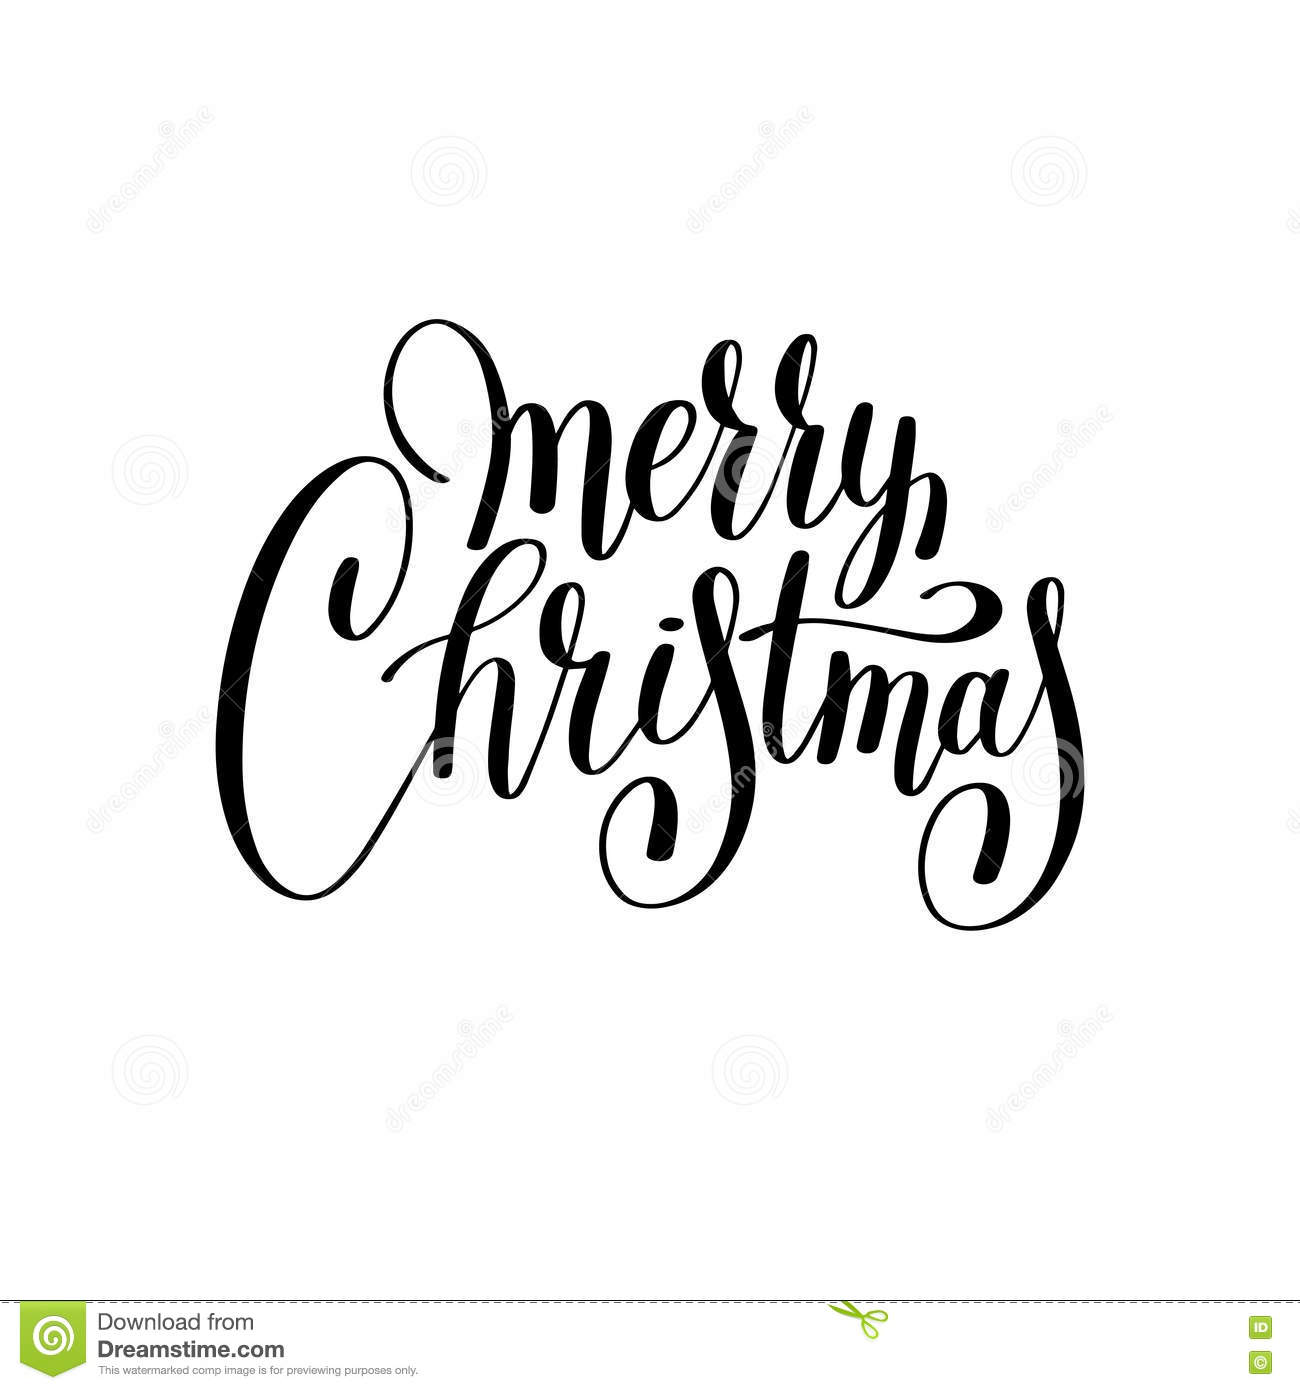 Merry Christmas Images Black And White.Merry Christmas Black And White Handwritten Lettering Stock